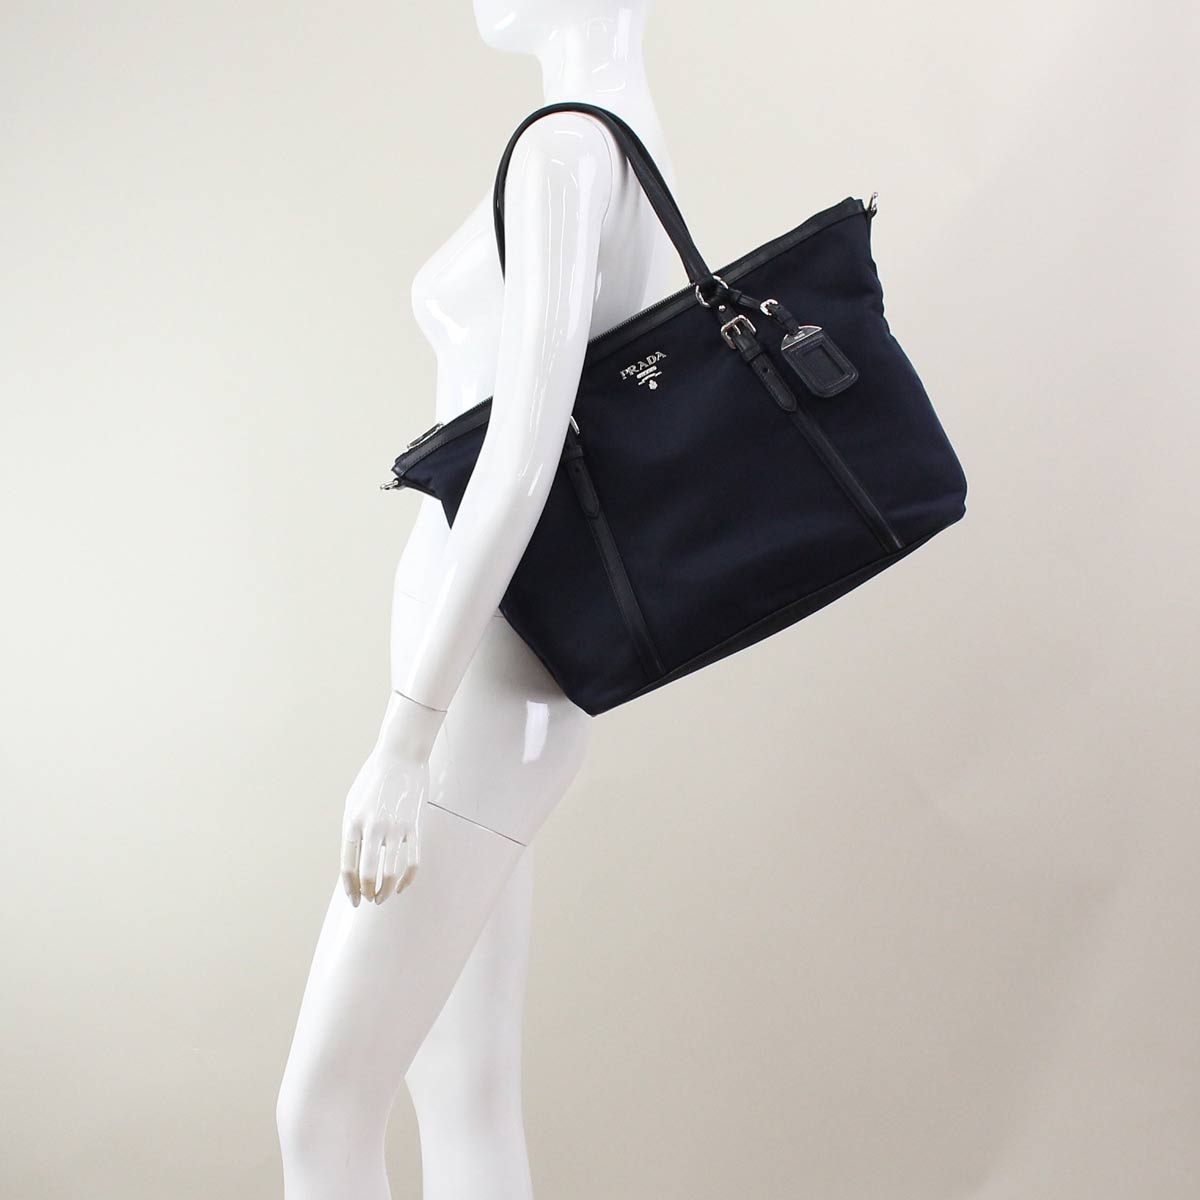 ( tax free ! )Prada outlet PRADA (OUTLET) tote bag B4253M-O-QXO-F0008 BLEU Navy( taxfree/send by EMS/authentic/A brand new item )